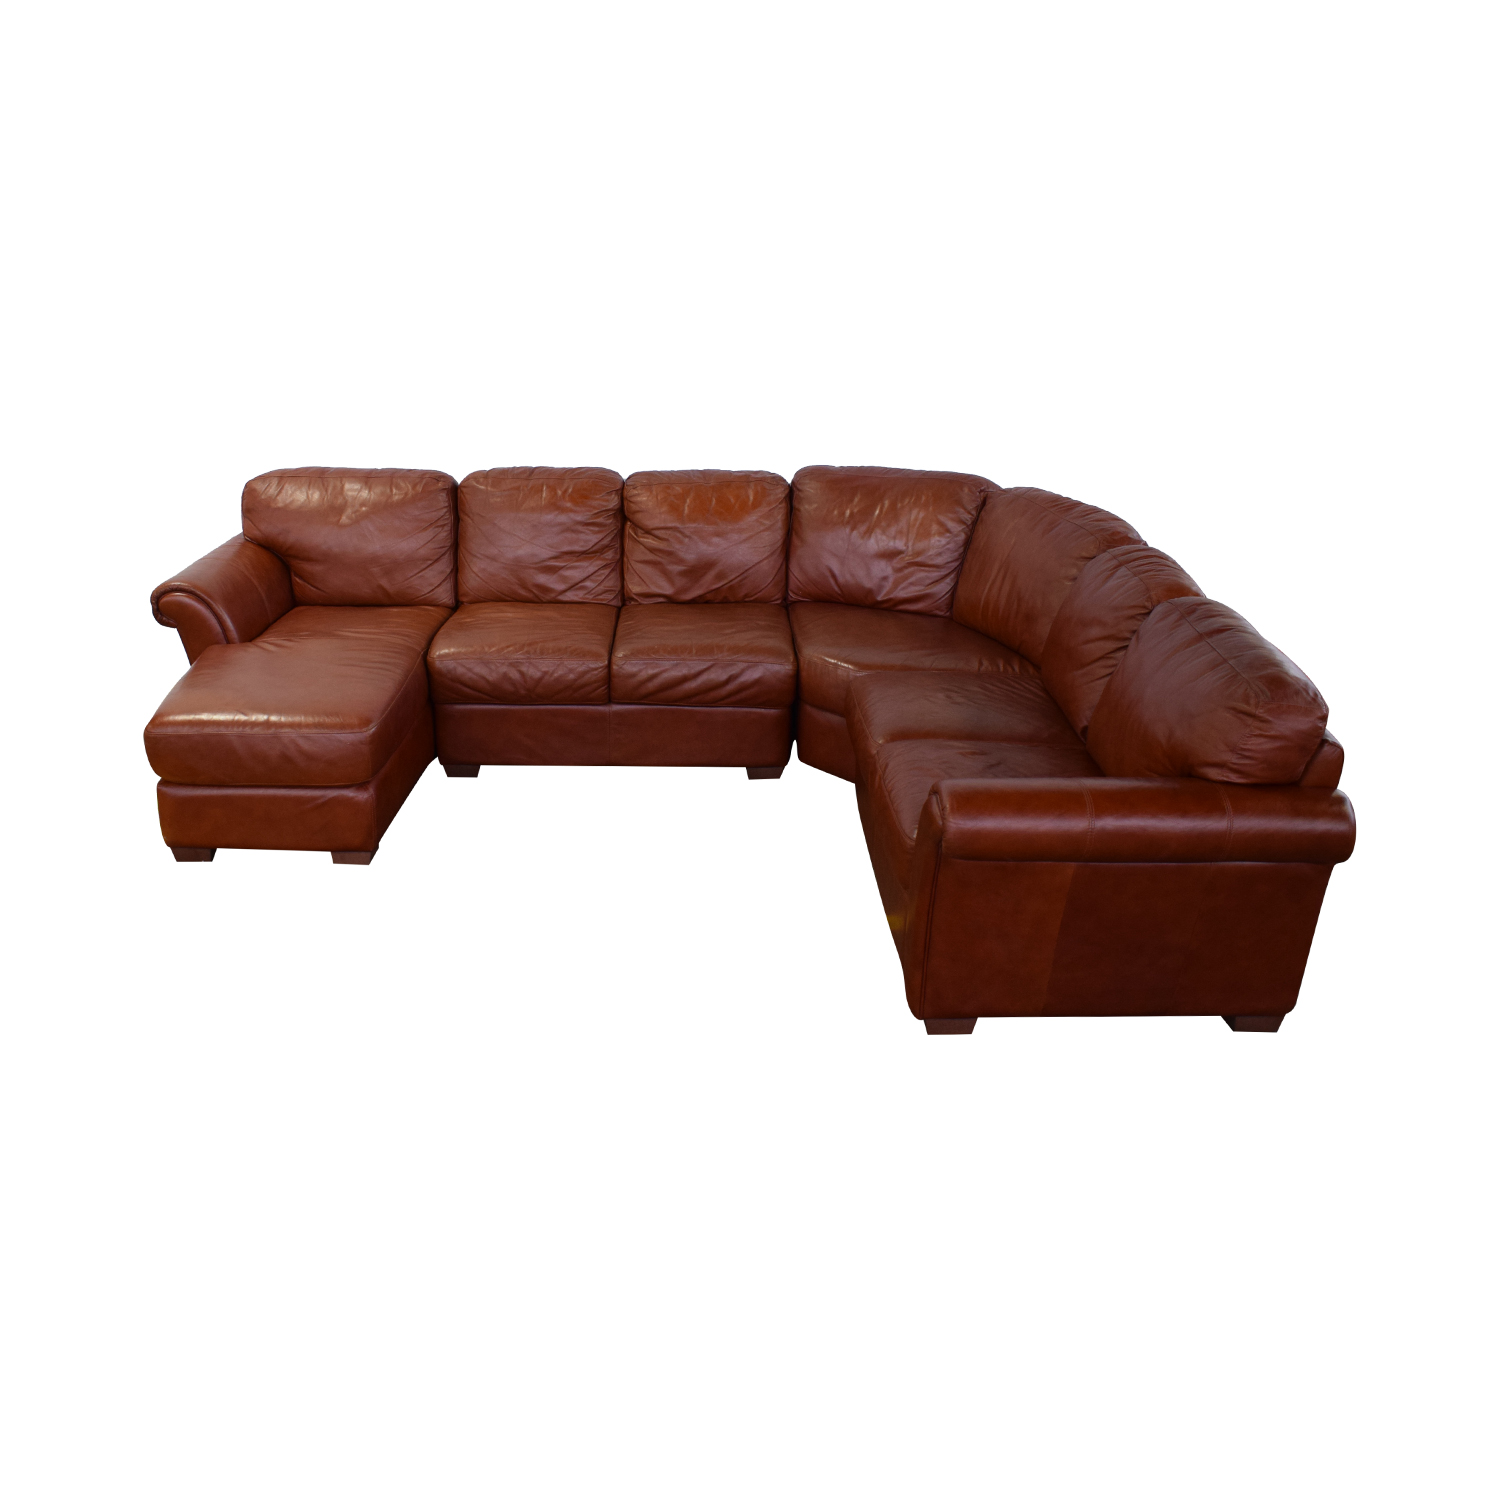 Chateau d'Ax Chateau d'Ax Leather Sectional nj